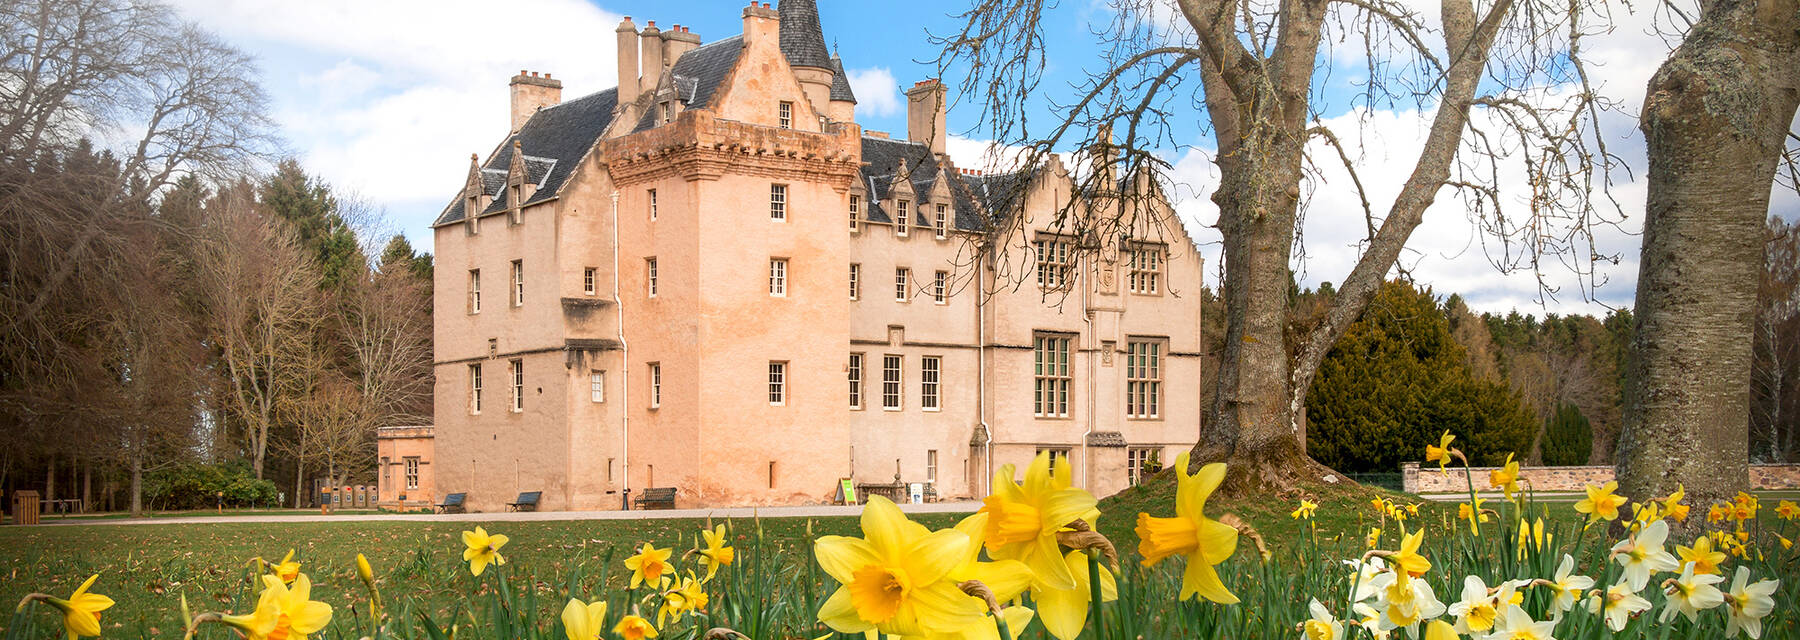 Brodie Castle exterior among large deciduous trees and daffodils